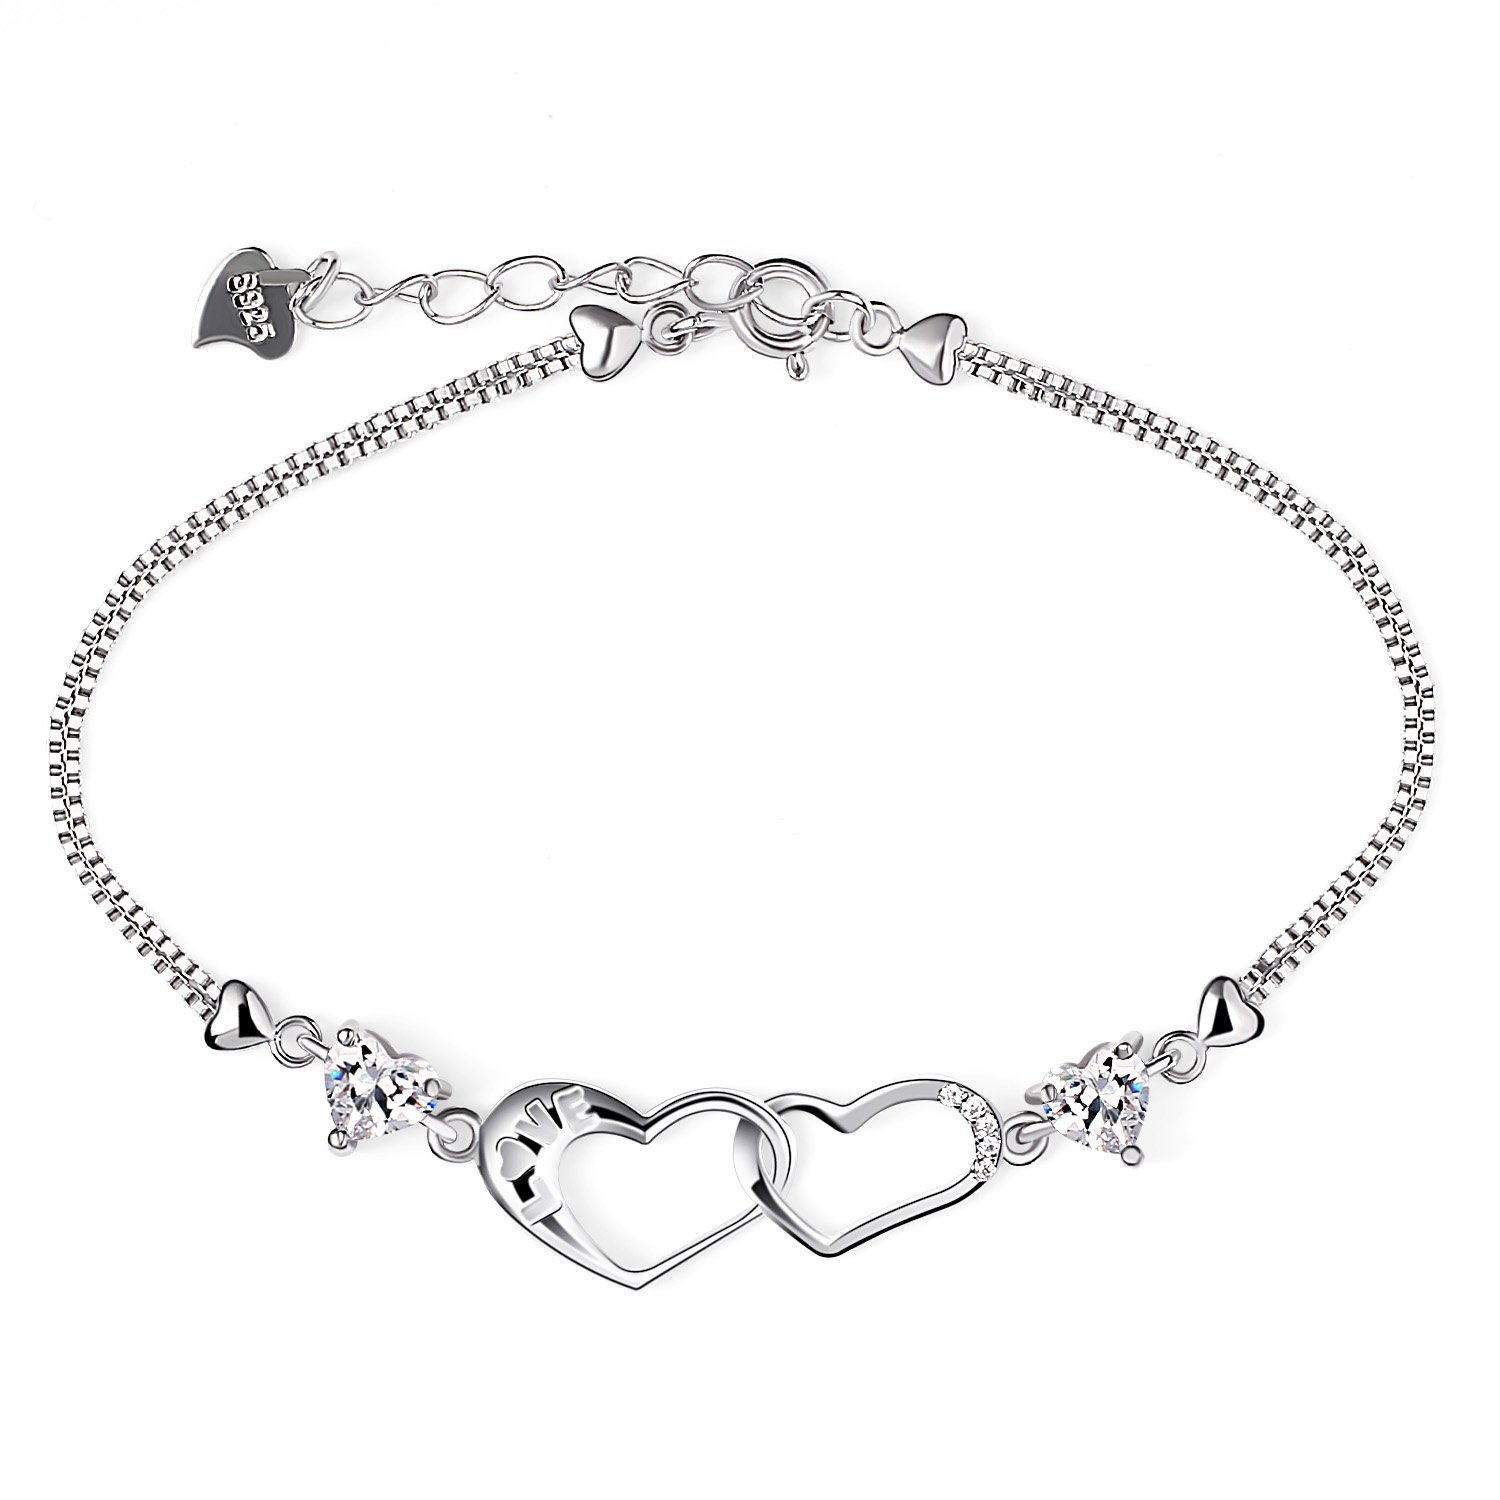 B.Catcher Womens Silver Bracelet Double Heart Charm Pendant Sterling Silver 925 Plated Cubic Zirconia BC-73